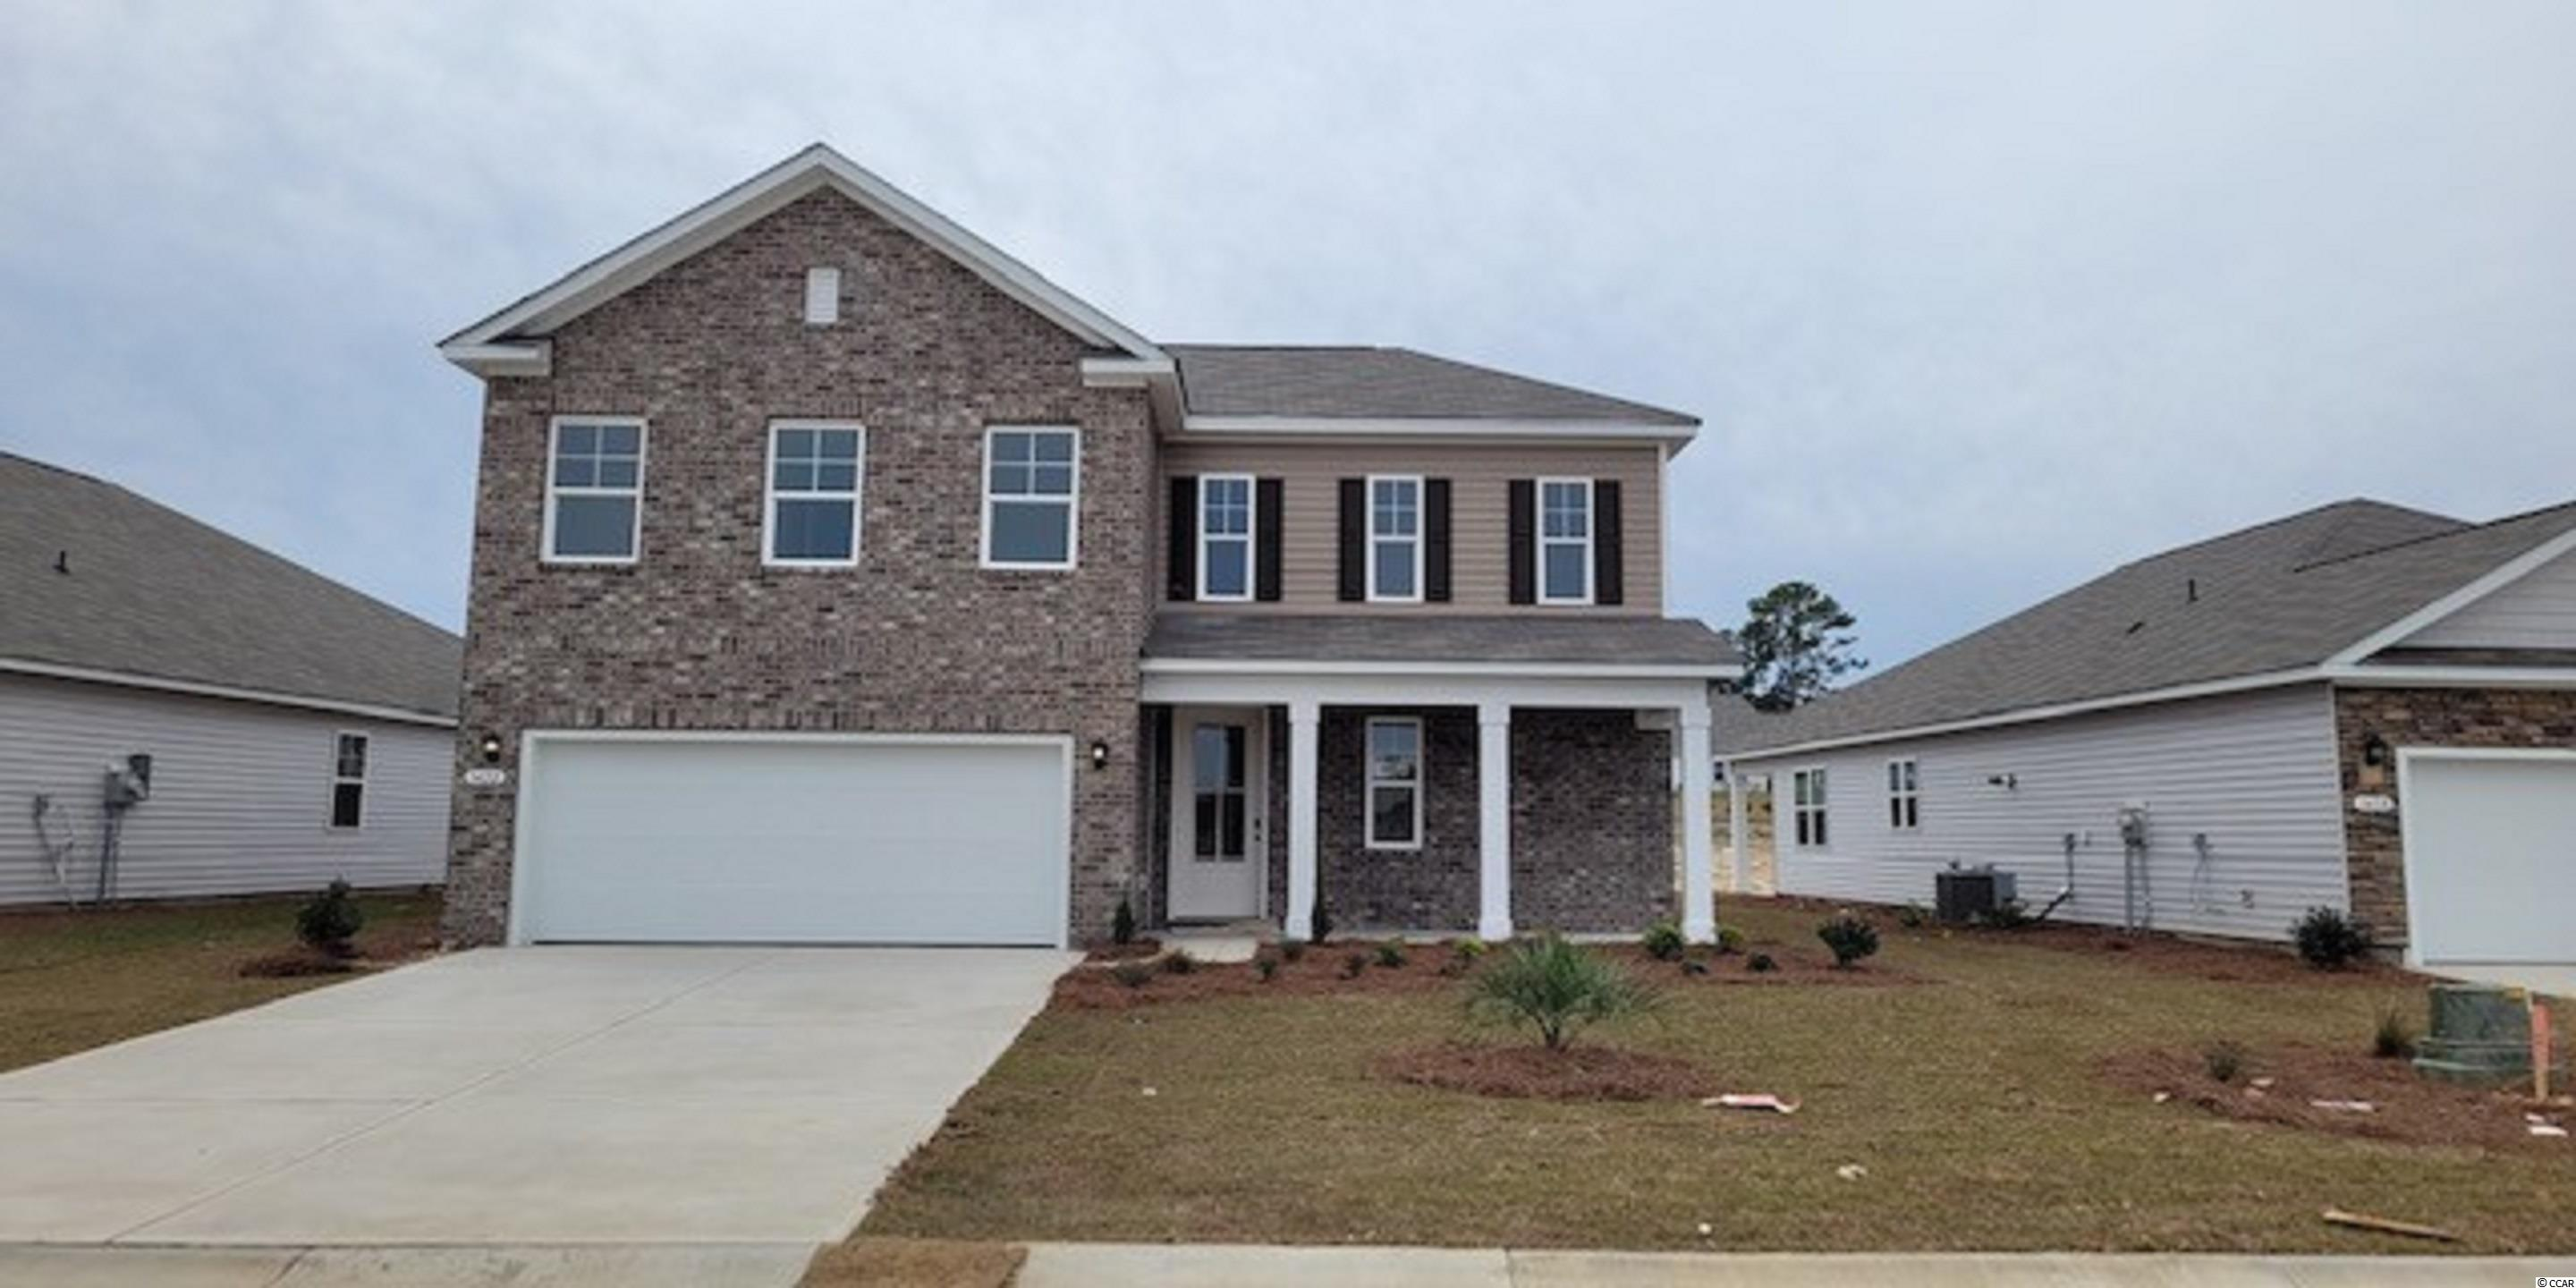 New phase now selling in Heather Glen! This two-story home is perfect for any stage of life offering the primary bedroom suite and laundry room on the first floor. Brick front elevation, inviting front porch, and 8 ft. entry door with glass. This home also features a spacious kitchen with white painted cabinetry, granite countertops, a large island with breakfast bar, walk-in pantry, and stainless Whirlpool appliances including a gas range. Beautiful wide plank laminate flooring flows through the foyer, kitchen, living room, and dining room with tile in the bathrooms and laundry room.  Three nicely sized bedrooms and a versatile loft space are upstairs! This home will feature a large rear screen porch. It gets better- this is America's Smart Home! Ask an agent today about our industry leading smart home technology package that is included in all of our new homes. Heather Glen is a brand new natural gas community where homeowners will enjoy a large clubhouse with sprawling verandas, impressive swimming pool, conditioned fitness center, fenced dog park, playground area, and blueberry garden!  *Photos and virtual tour are of a similar Belfort home.  (Home and community information, including pricing, included features, terms, availability and amenities, are subject to change prior to sale at any time without notice or obligation. Square footages are approximate. Pictures, photographs, colors, features, and sizes are for illustration purposes only and will vary from the homes as built. Equal housing opportunity builder.)